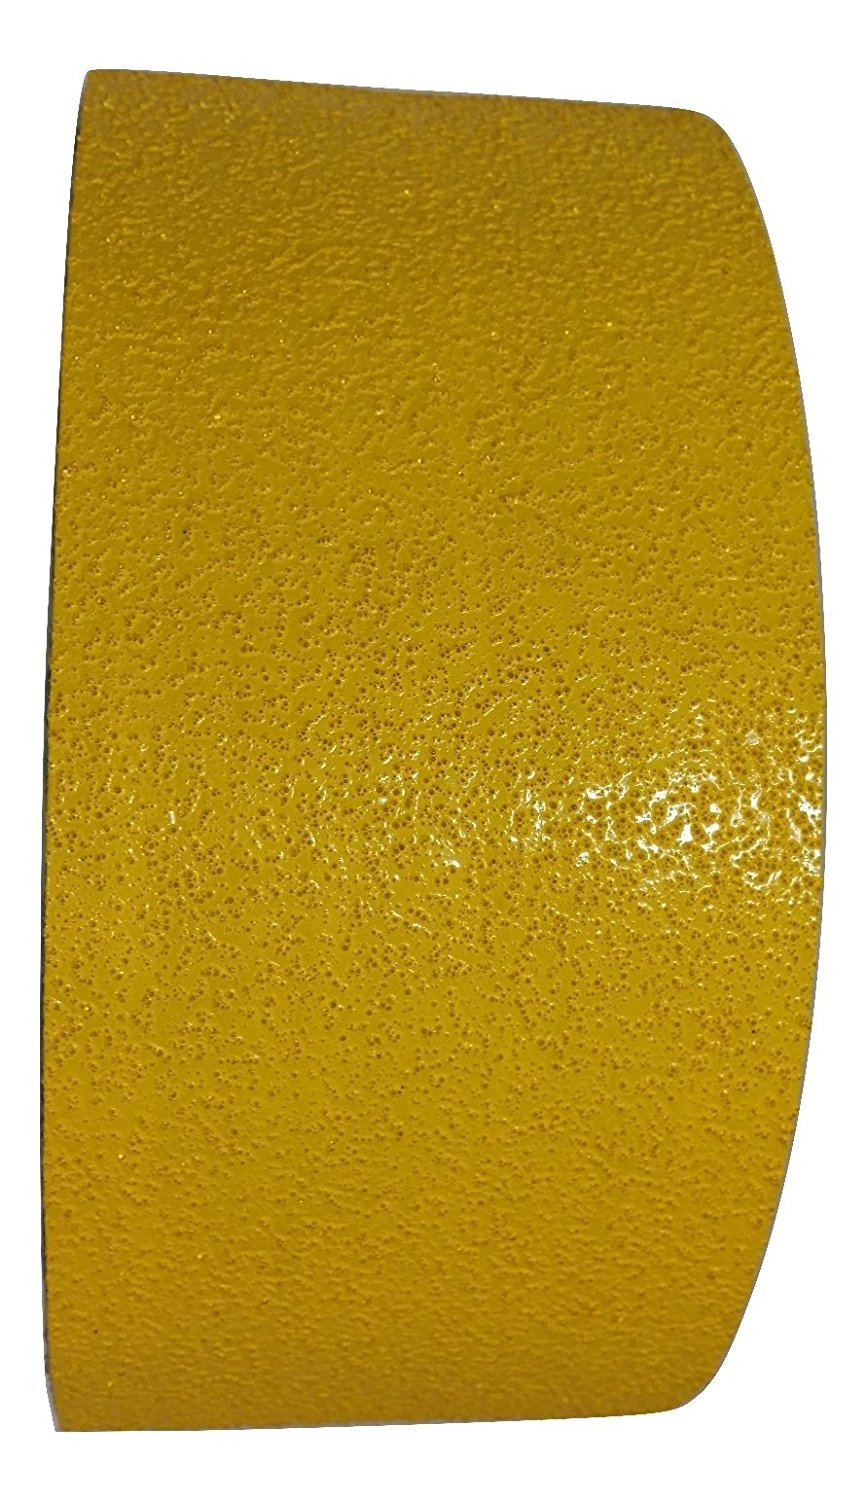 Armadillo Yellow Heavy Duty Reflective Parking Stripe Tape for High Impact Area 3 Inch x 36 Foot Roll